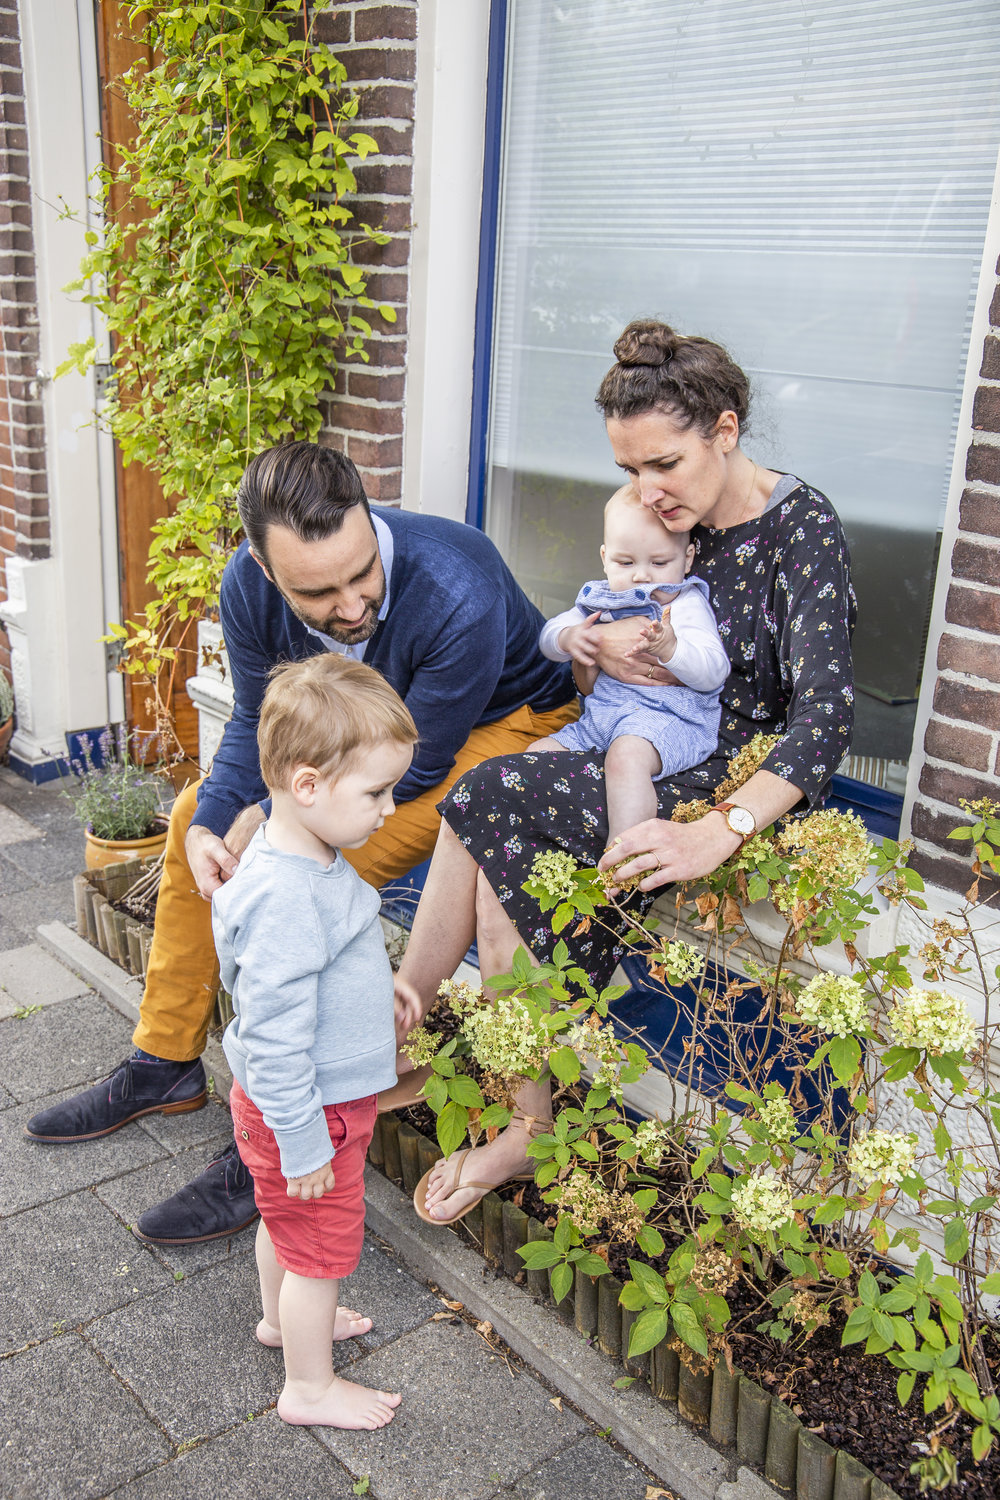 Photo credits:  Margriet de Jager Fotografie